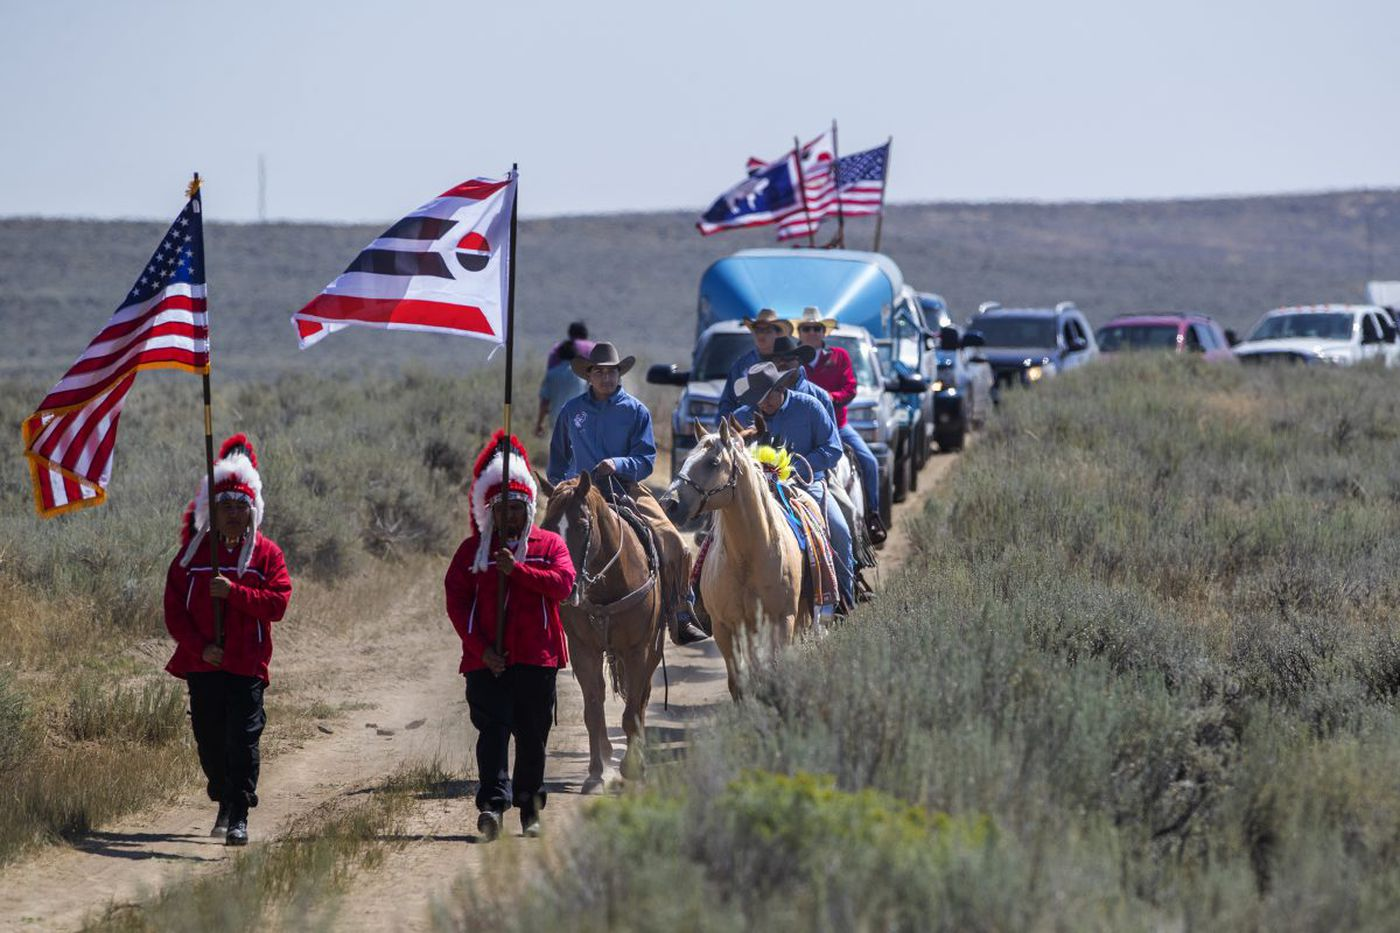 'Justice delayed' worth the wait to bury Native American children